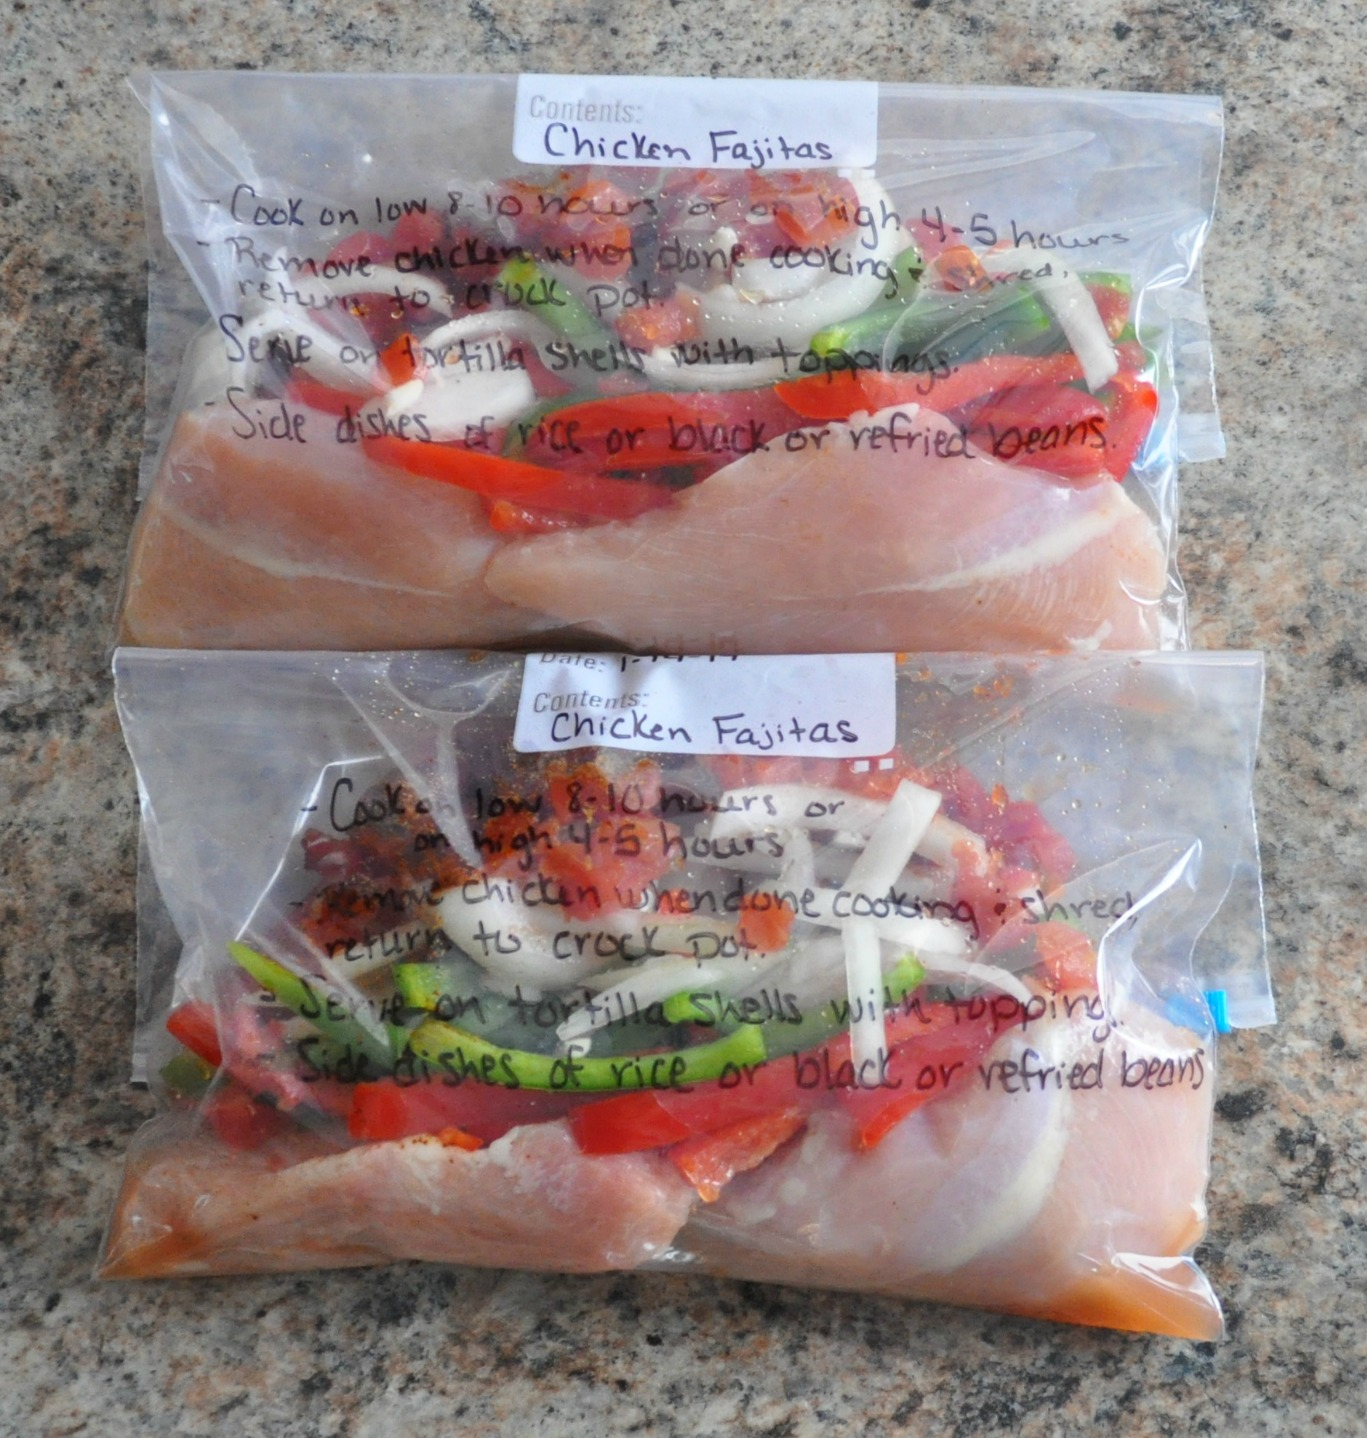 Crock Pot Meals Chicken: Crock Pot Freezer Meals: Chicken Fajitas